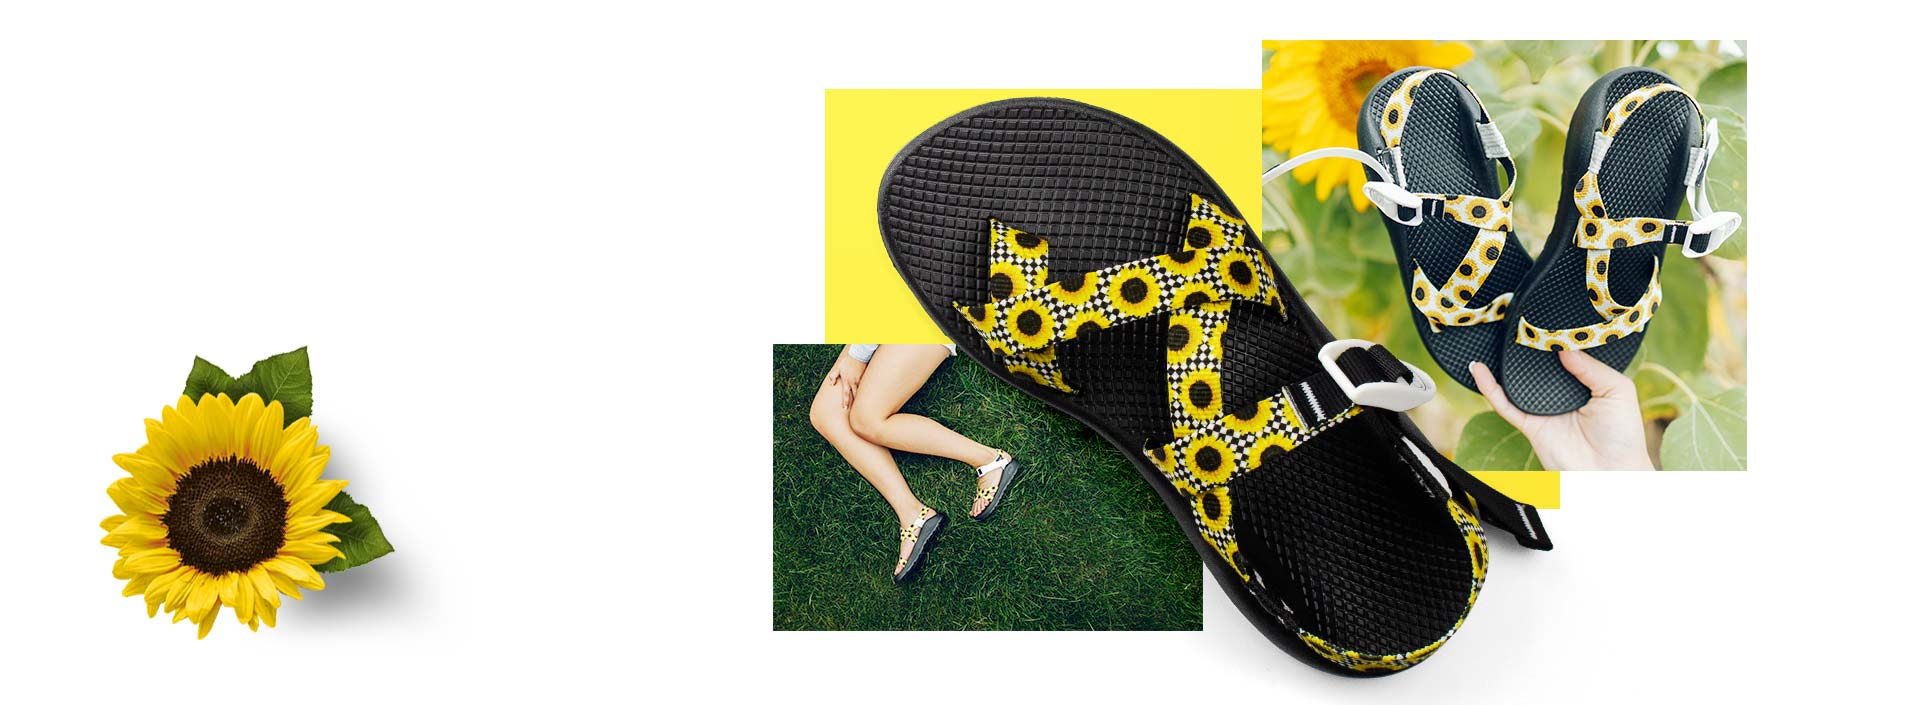 Sunflower and sunflower Chaco sandals in yellow, black and white.